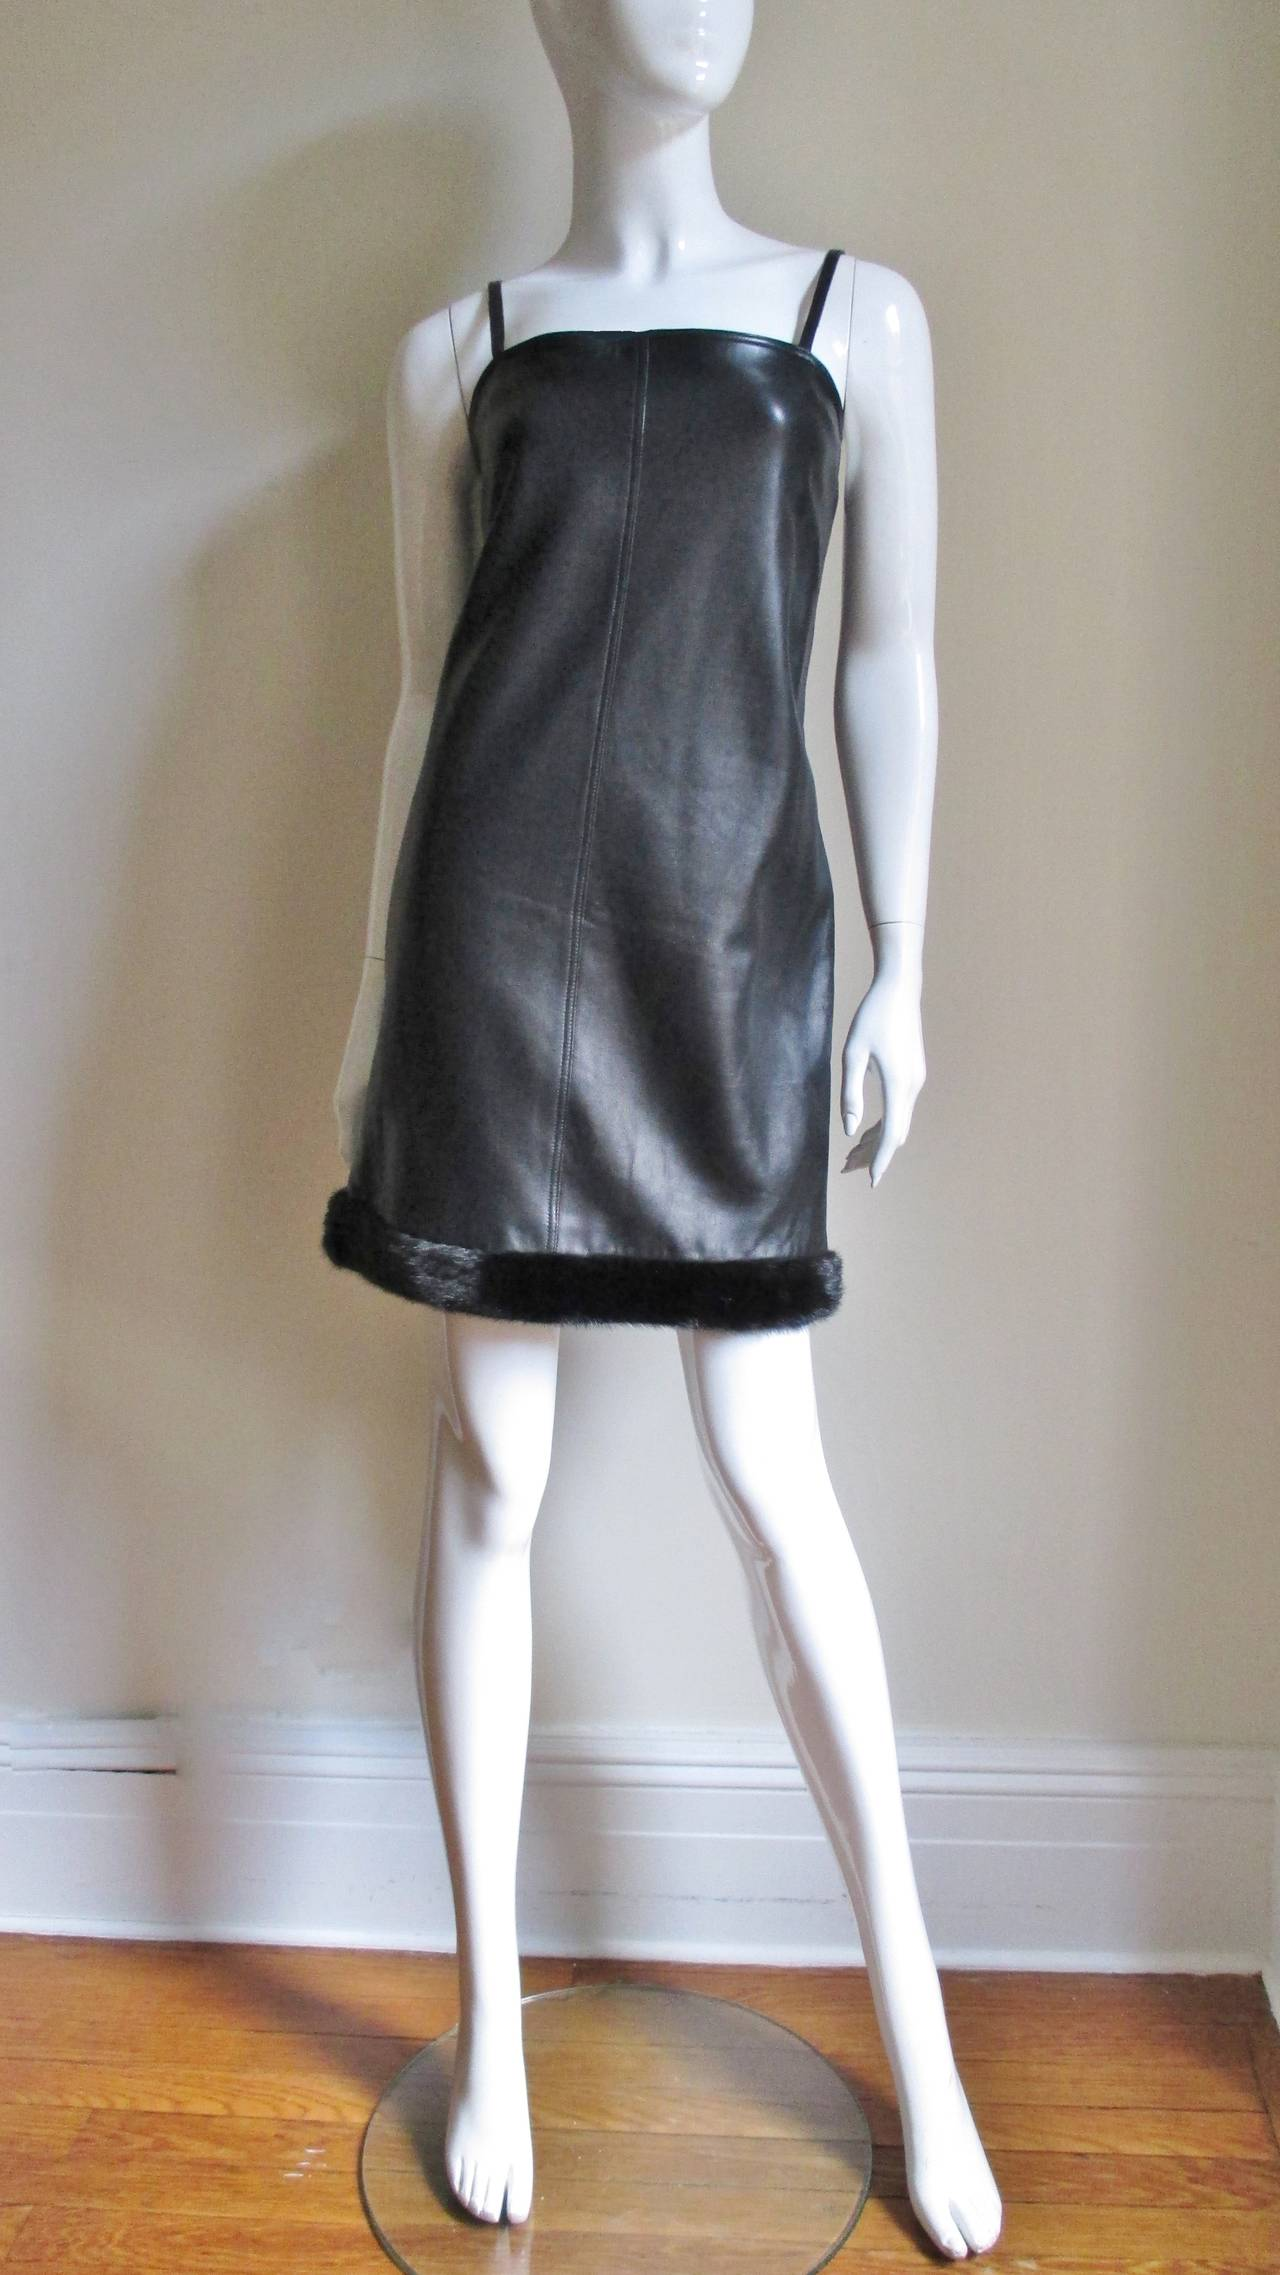 Vintage Gianni Versace Leather Dress with Mink Trim 5